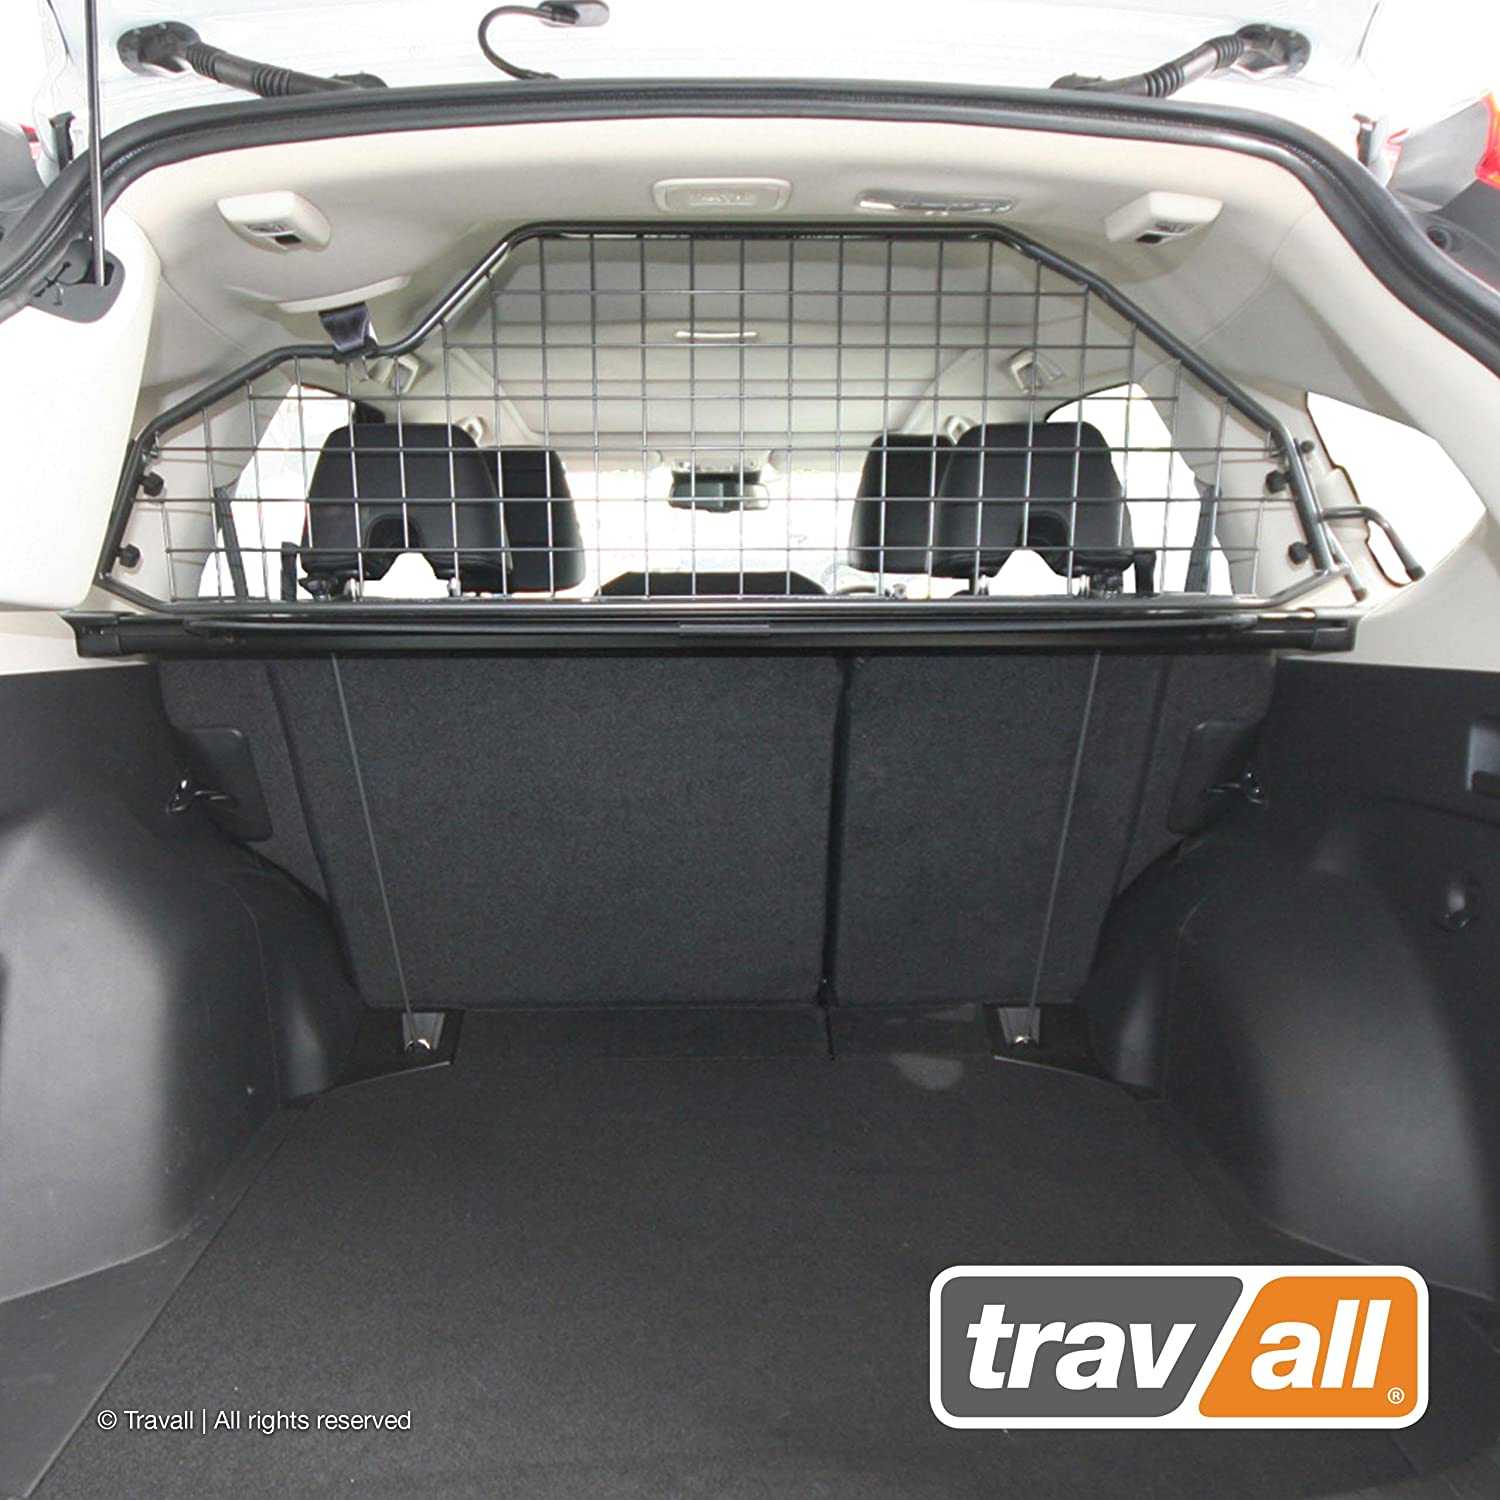 Travall Guard Compatible with Volkswagen Golf Wagon Without Sunroof 2013-Current Golf Alltrack 2015-Current TDG1407 – Rattle-Free Steel Pet Barrier